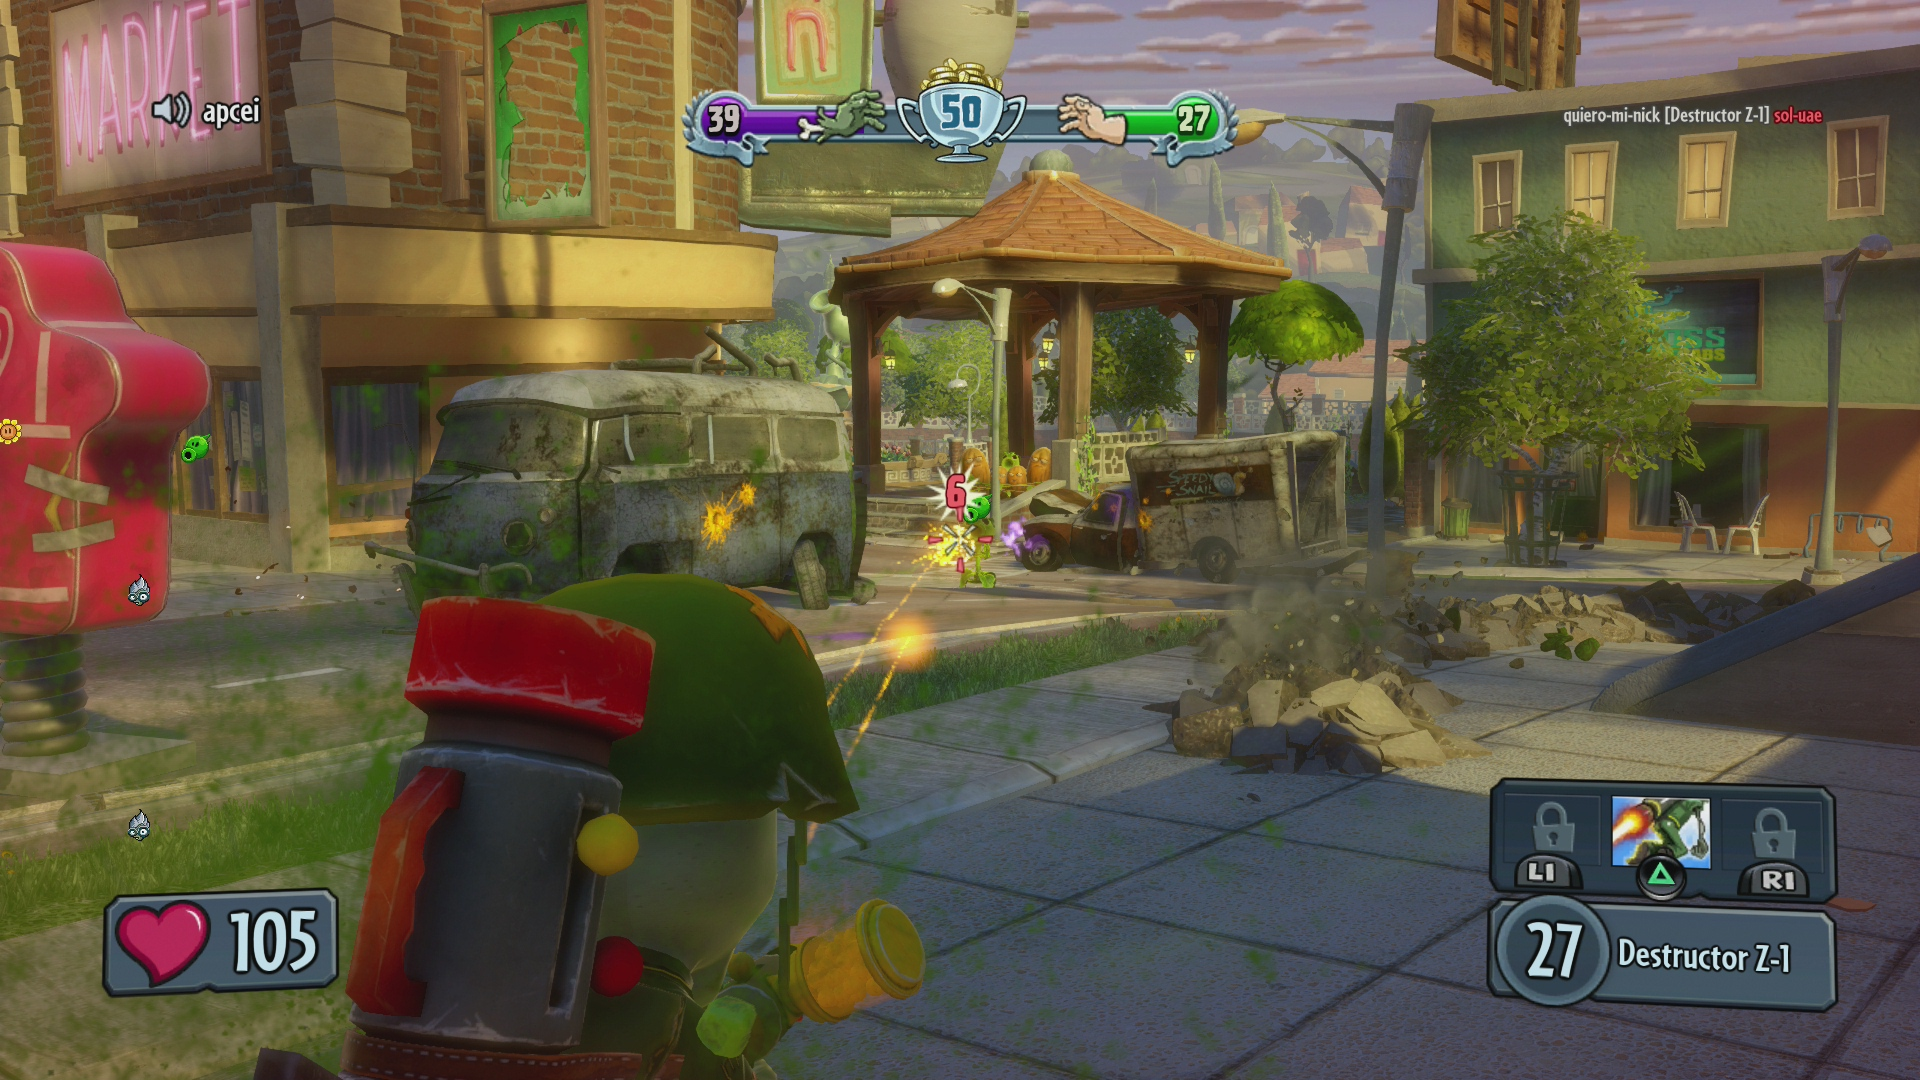 Análisis de Plants vs Zombies Garden Warfare en PS4 - HobbyConsolas ...